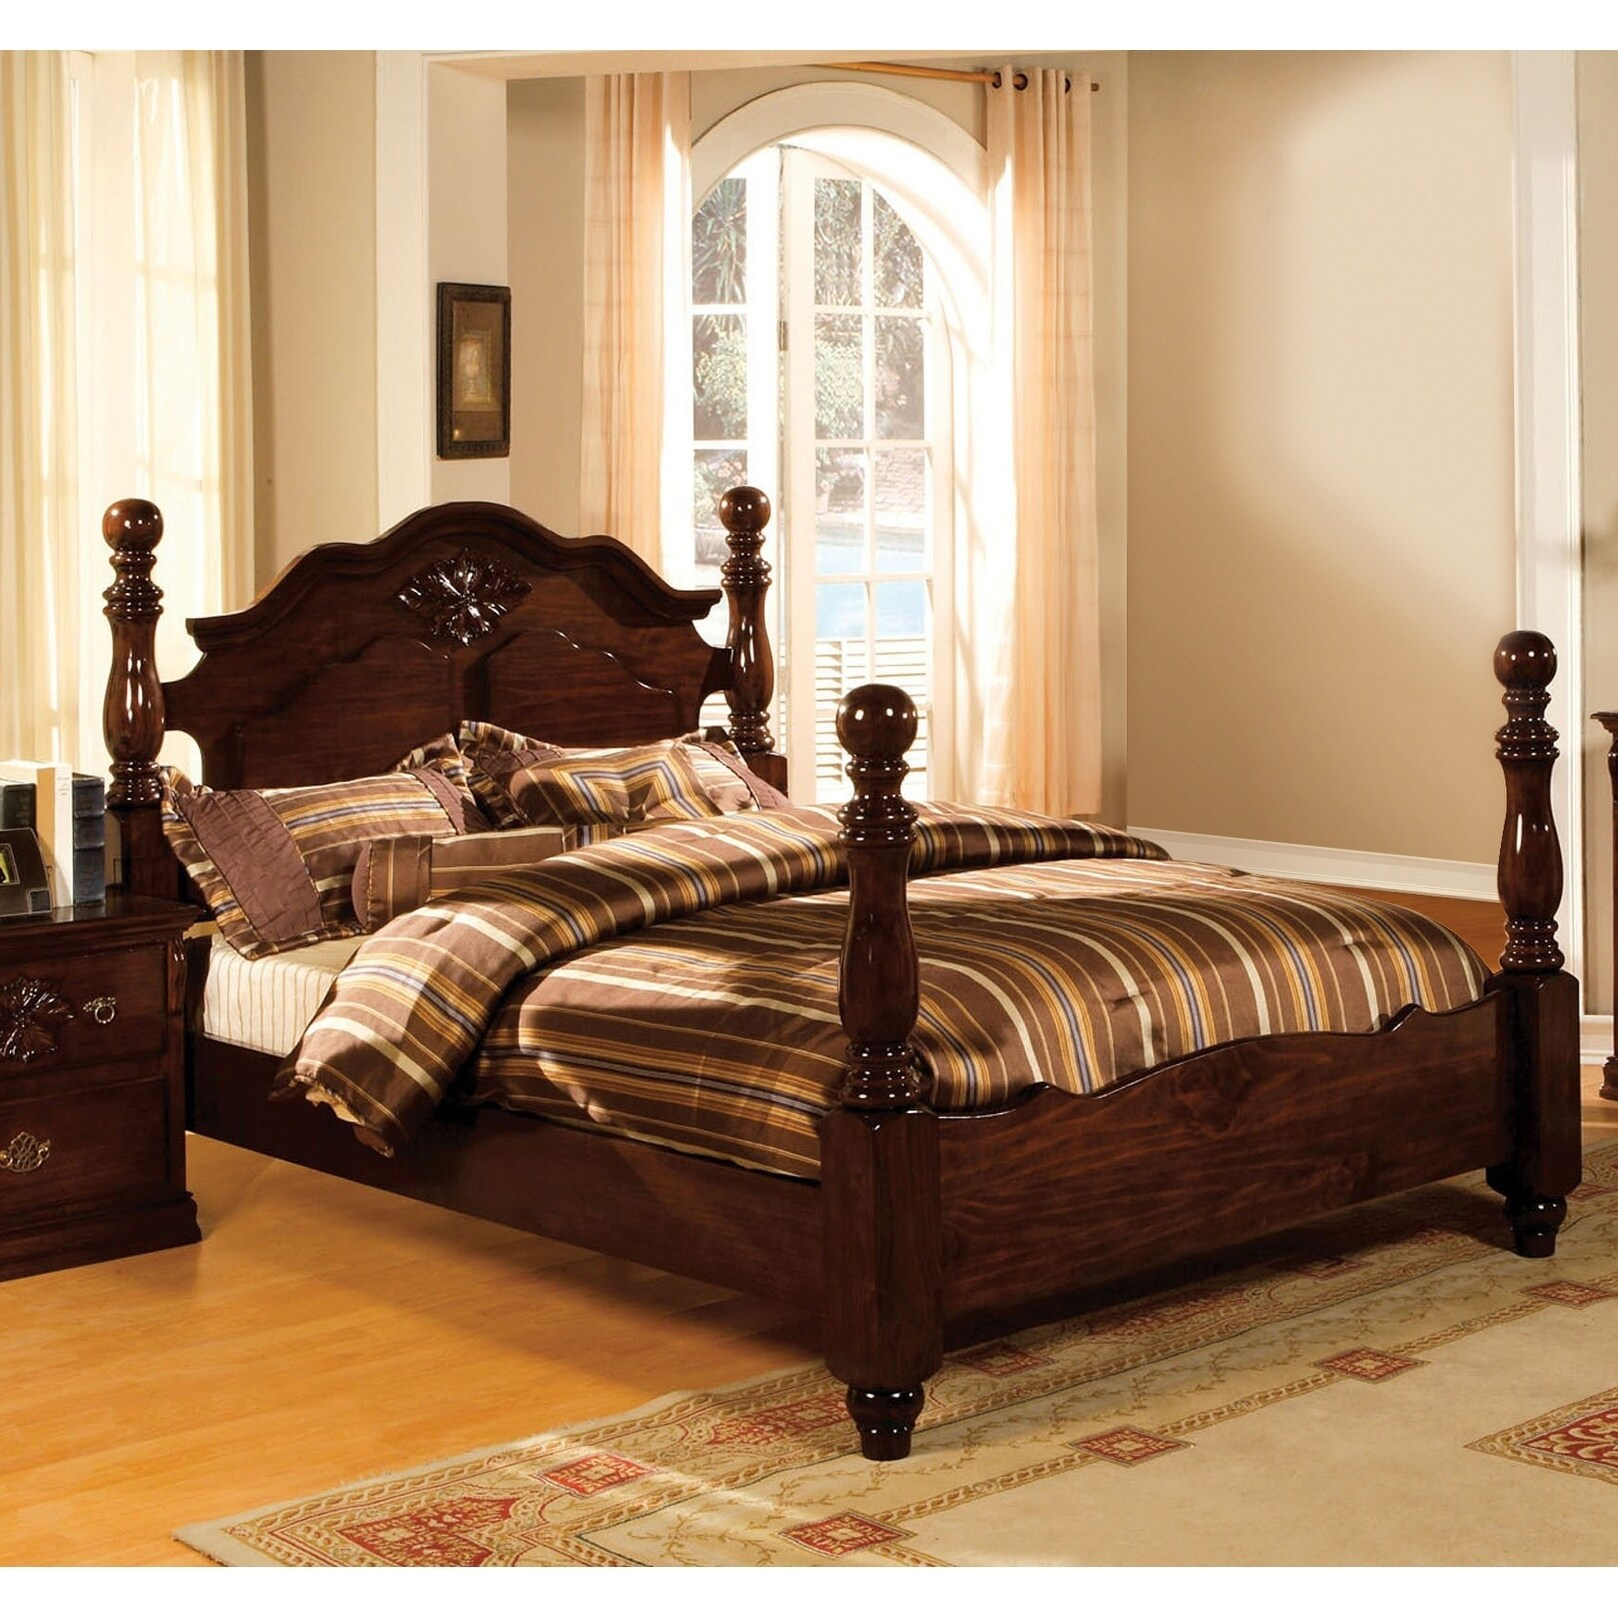 Furniture Of America Weston Traditional Pine Four Poster Bed Overstock 9218879